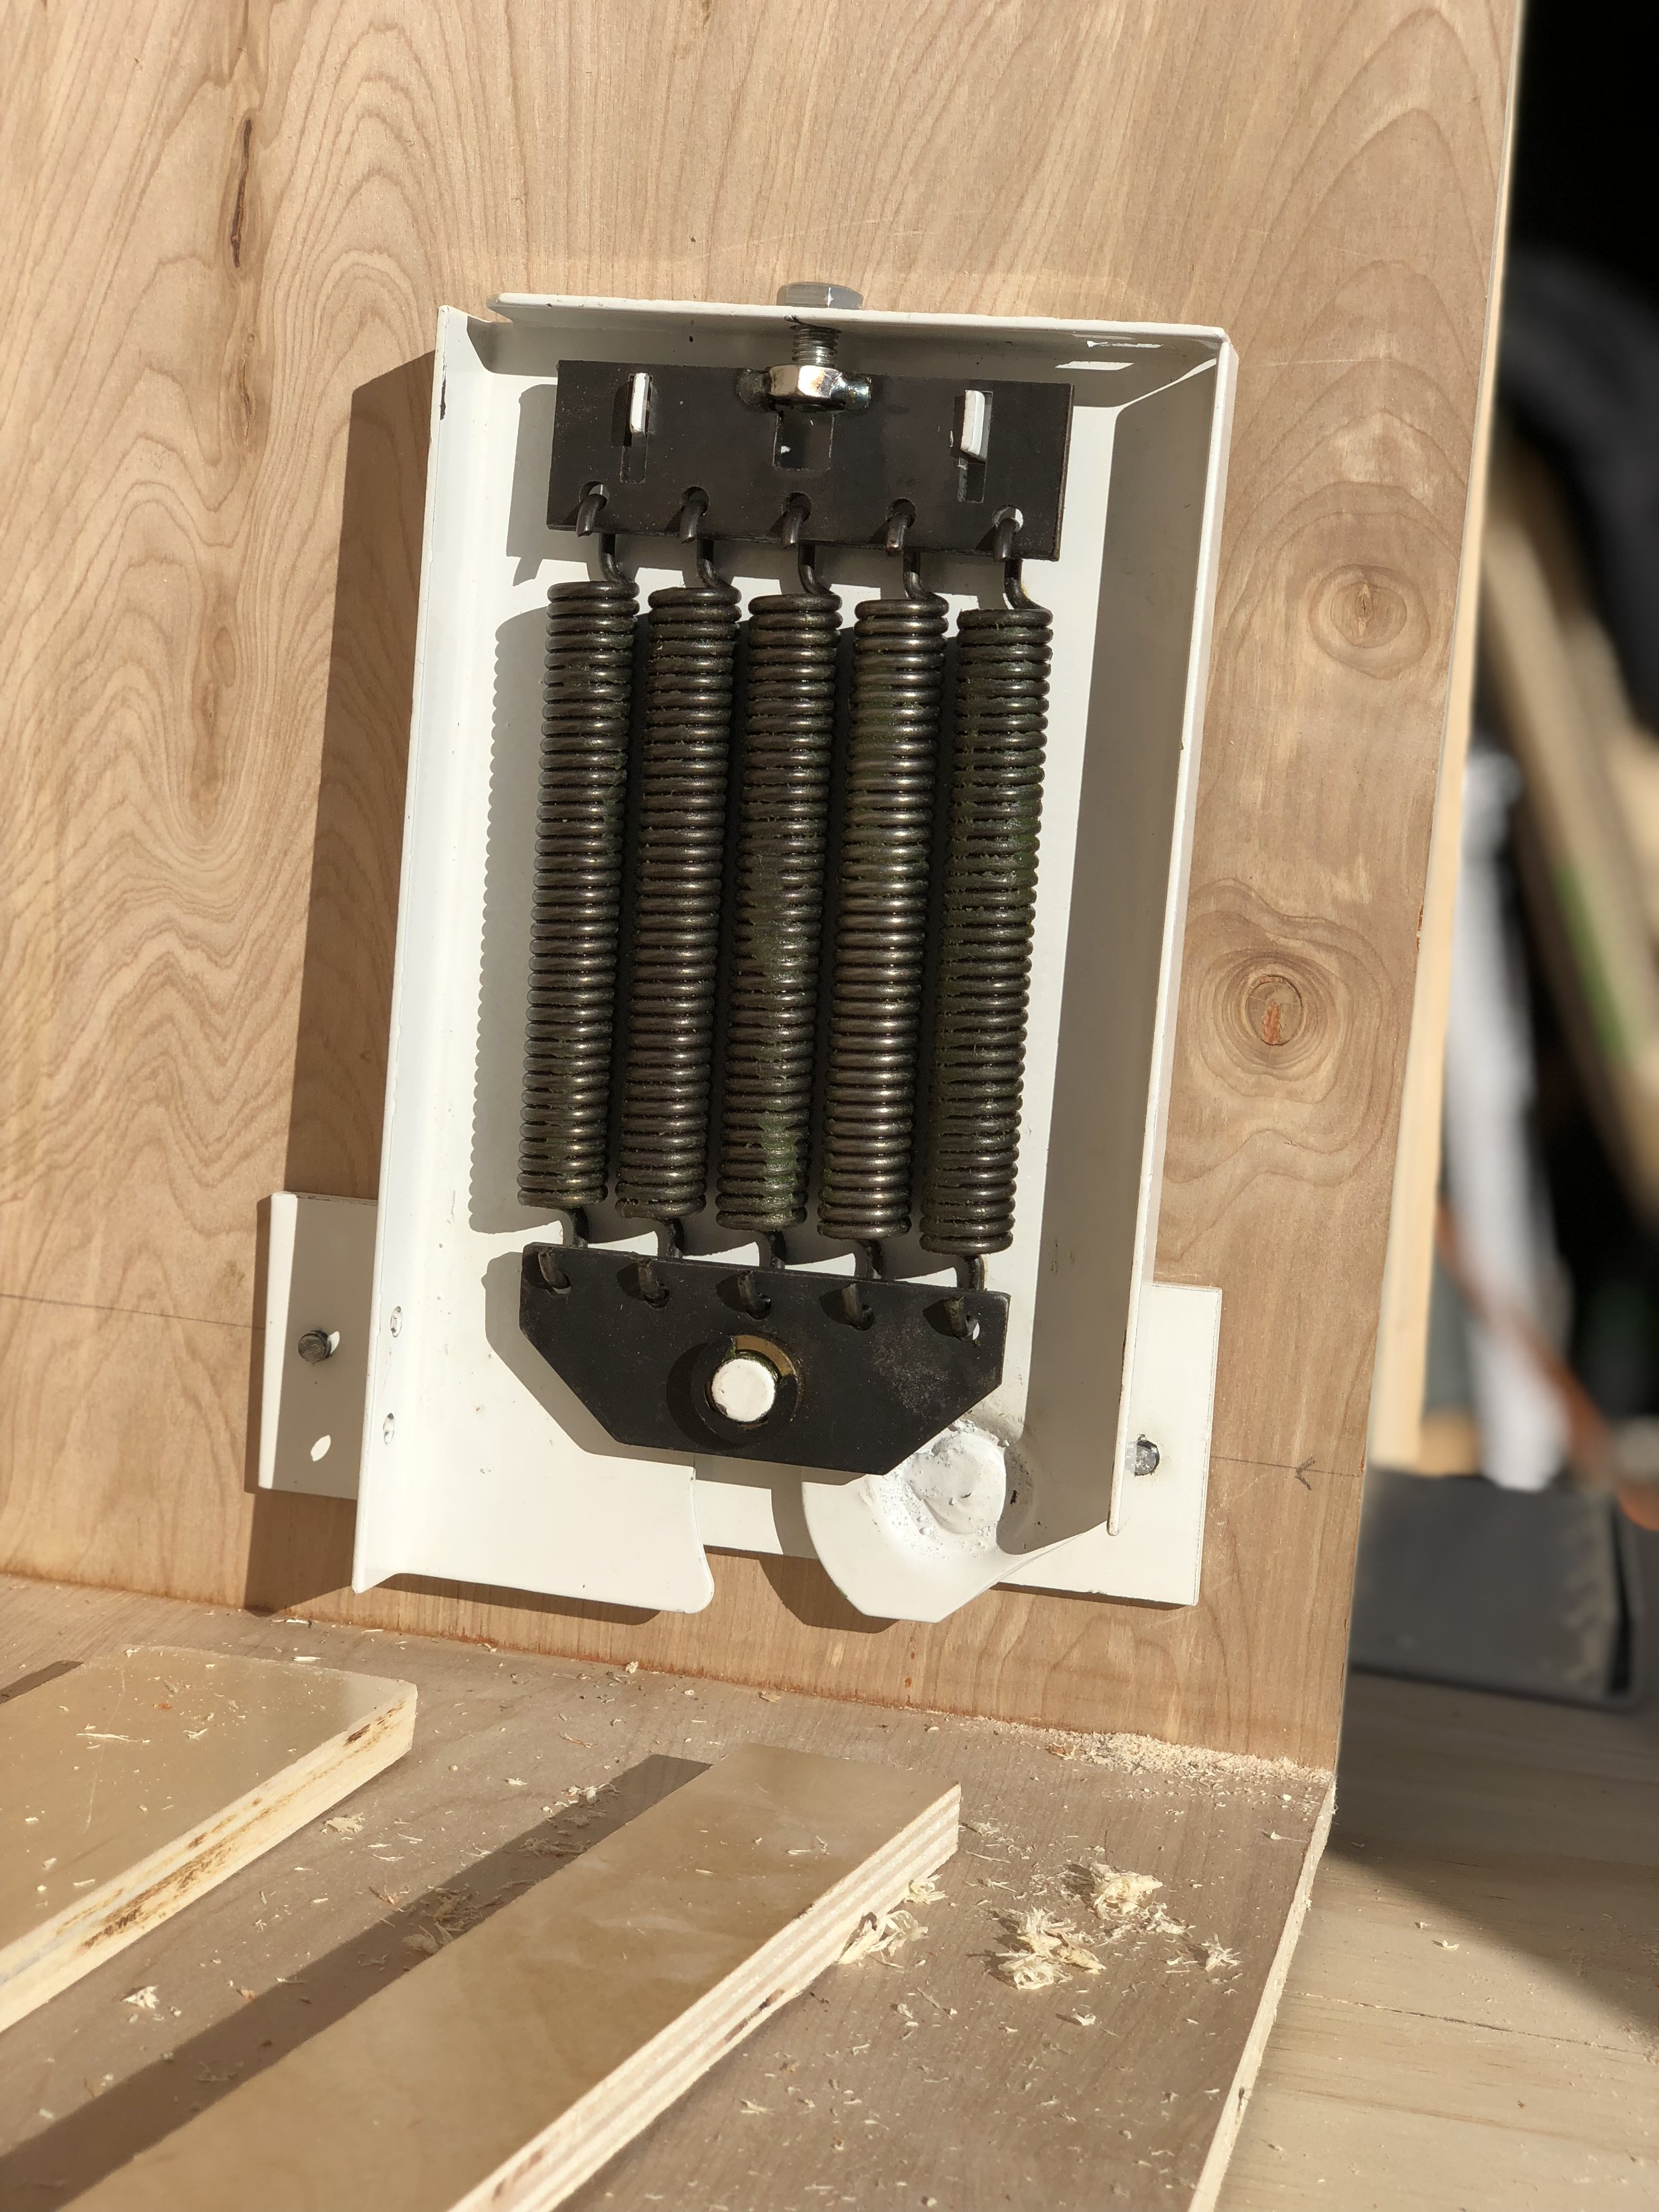 Springs - They were not easy to install.